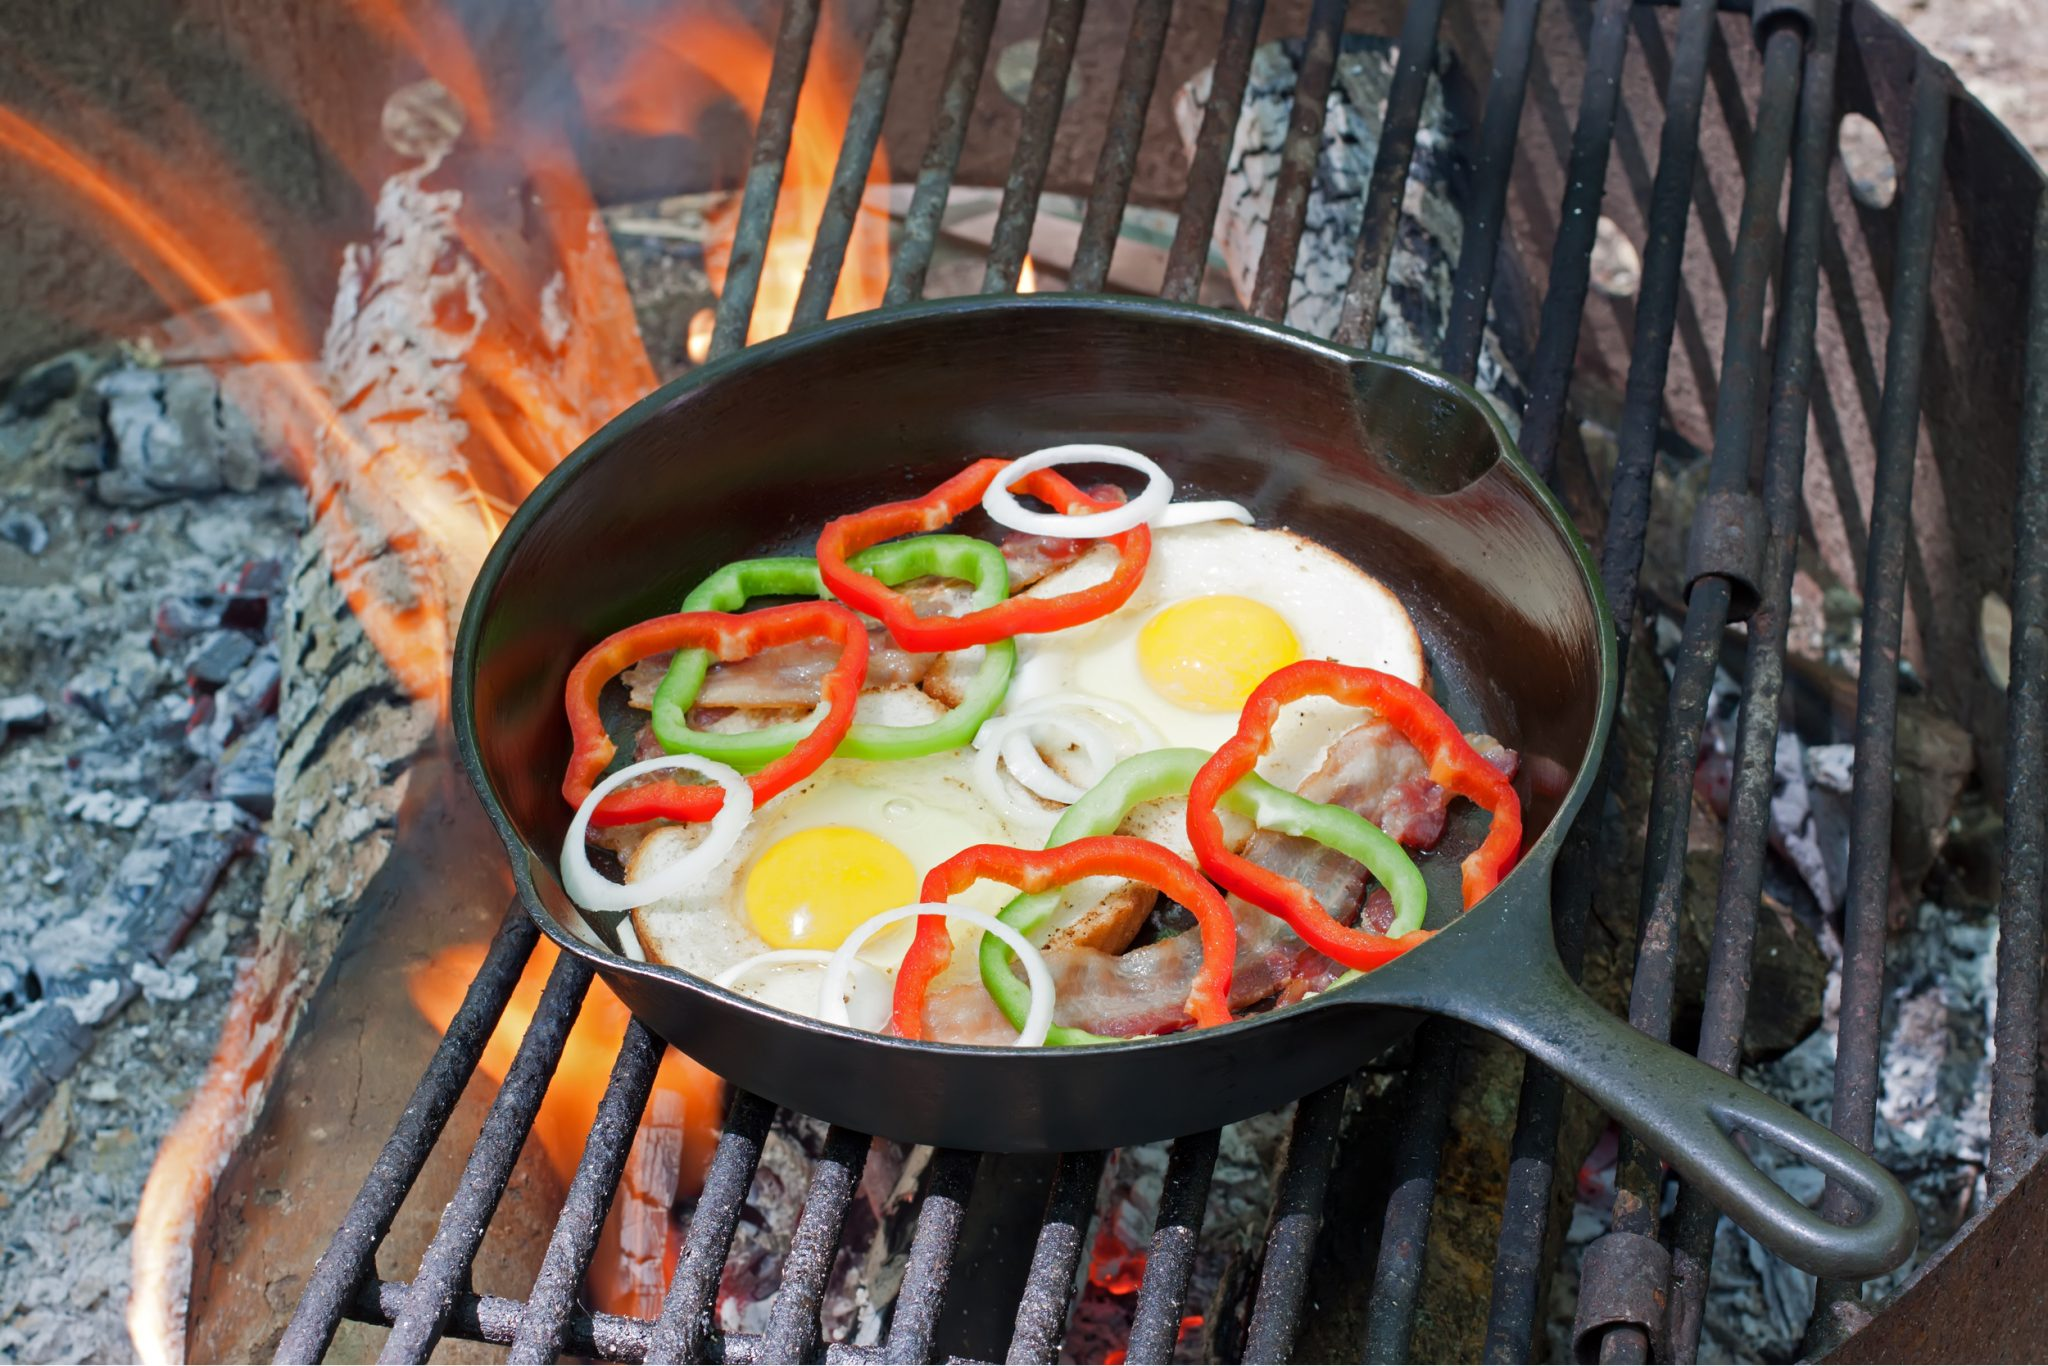 Backyard Campfire Cooking with Your Fire Pit